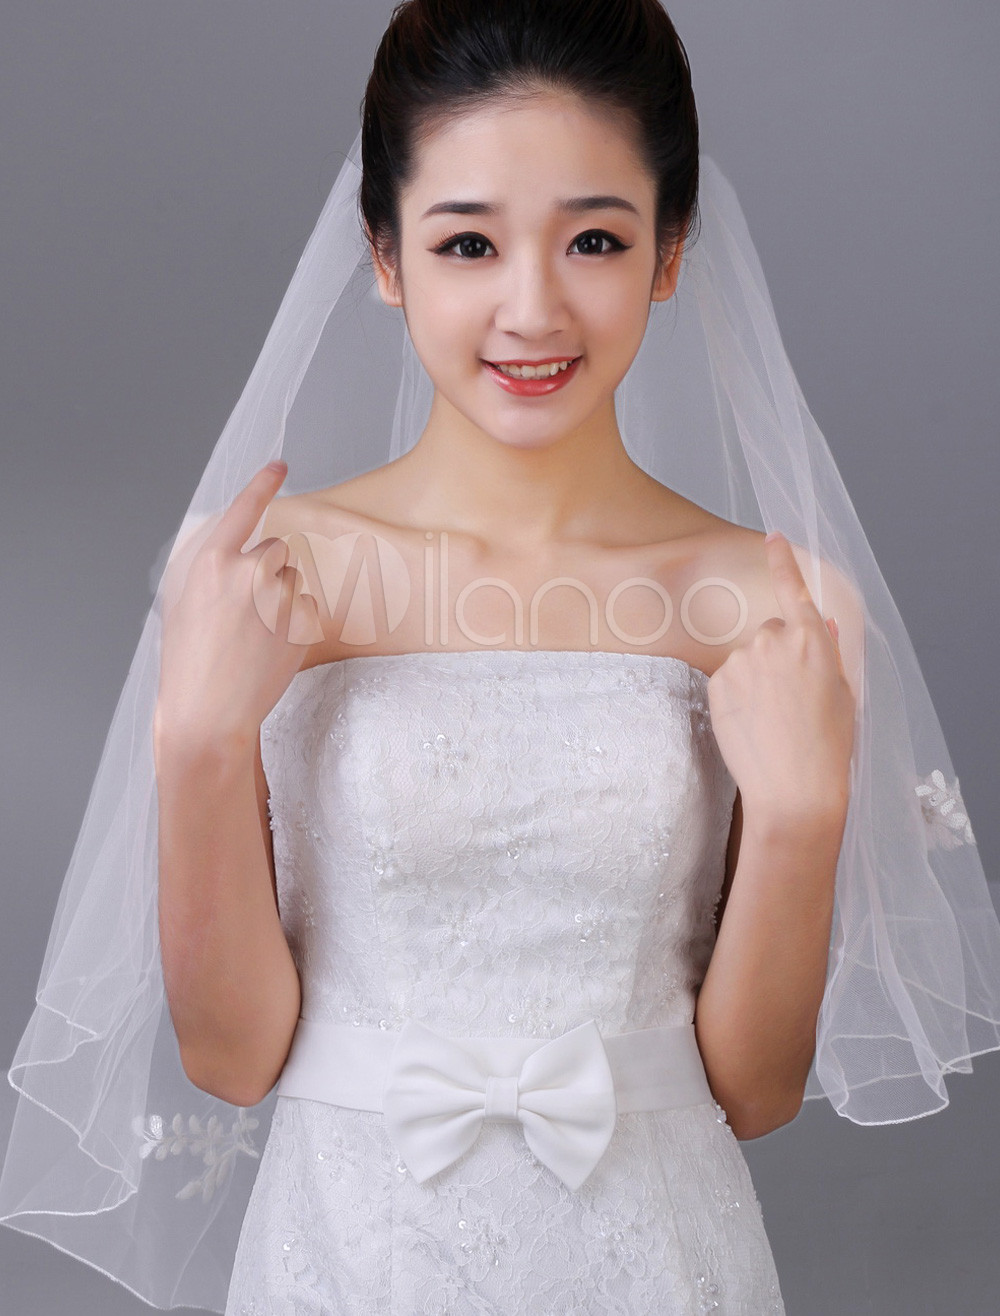 White One-Tier Sequin Tulle Bridal Wedding Veil